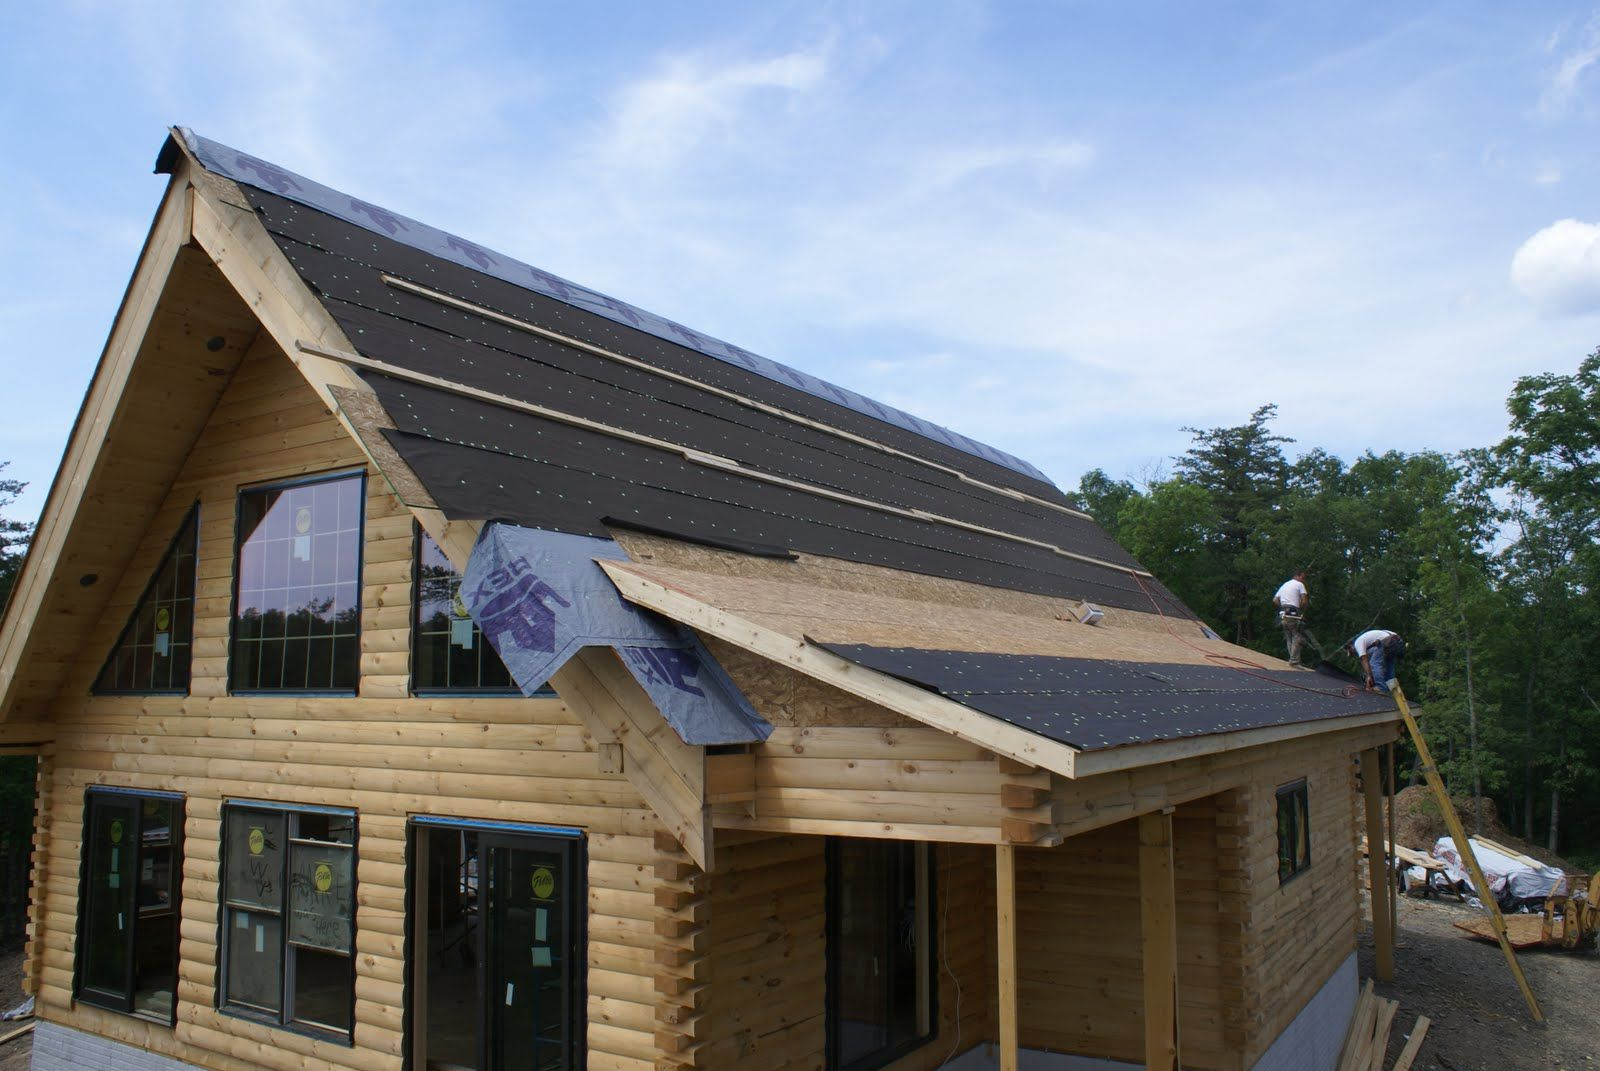 Shed Roof Addition Vy04 Roccommunity Shed Roof Gable Roof Design Facade House